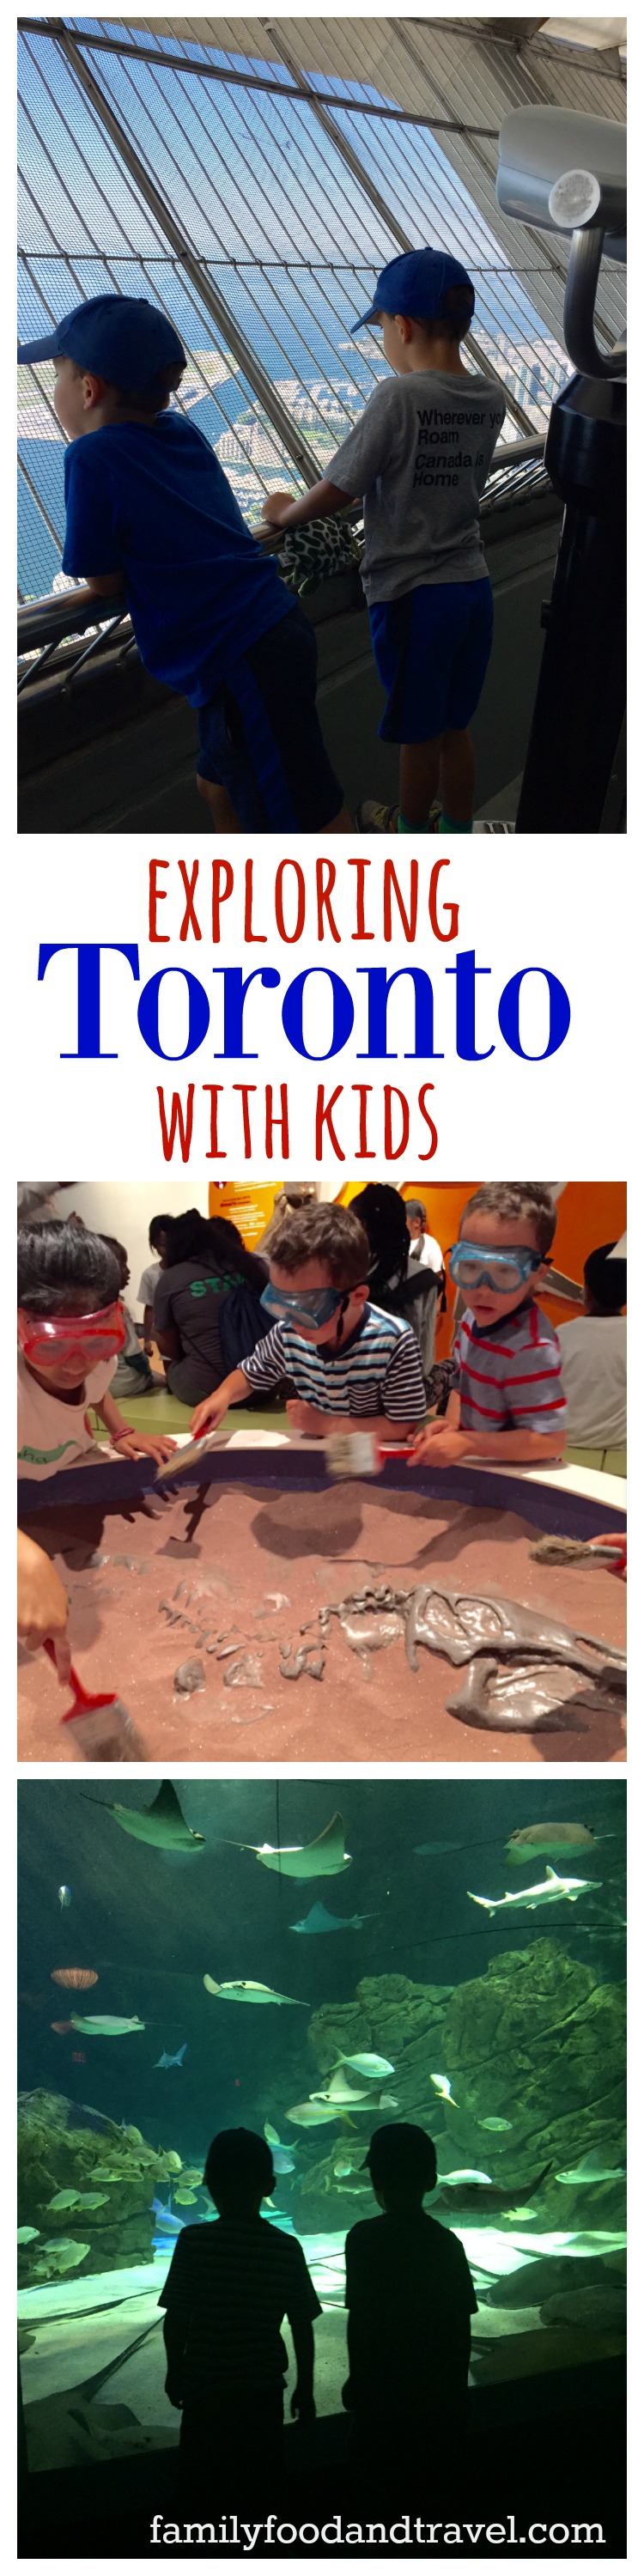 visiting Toronto with Kids